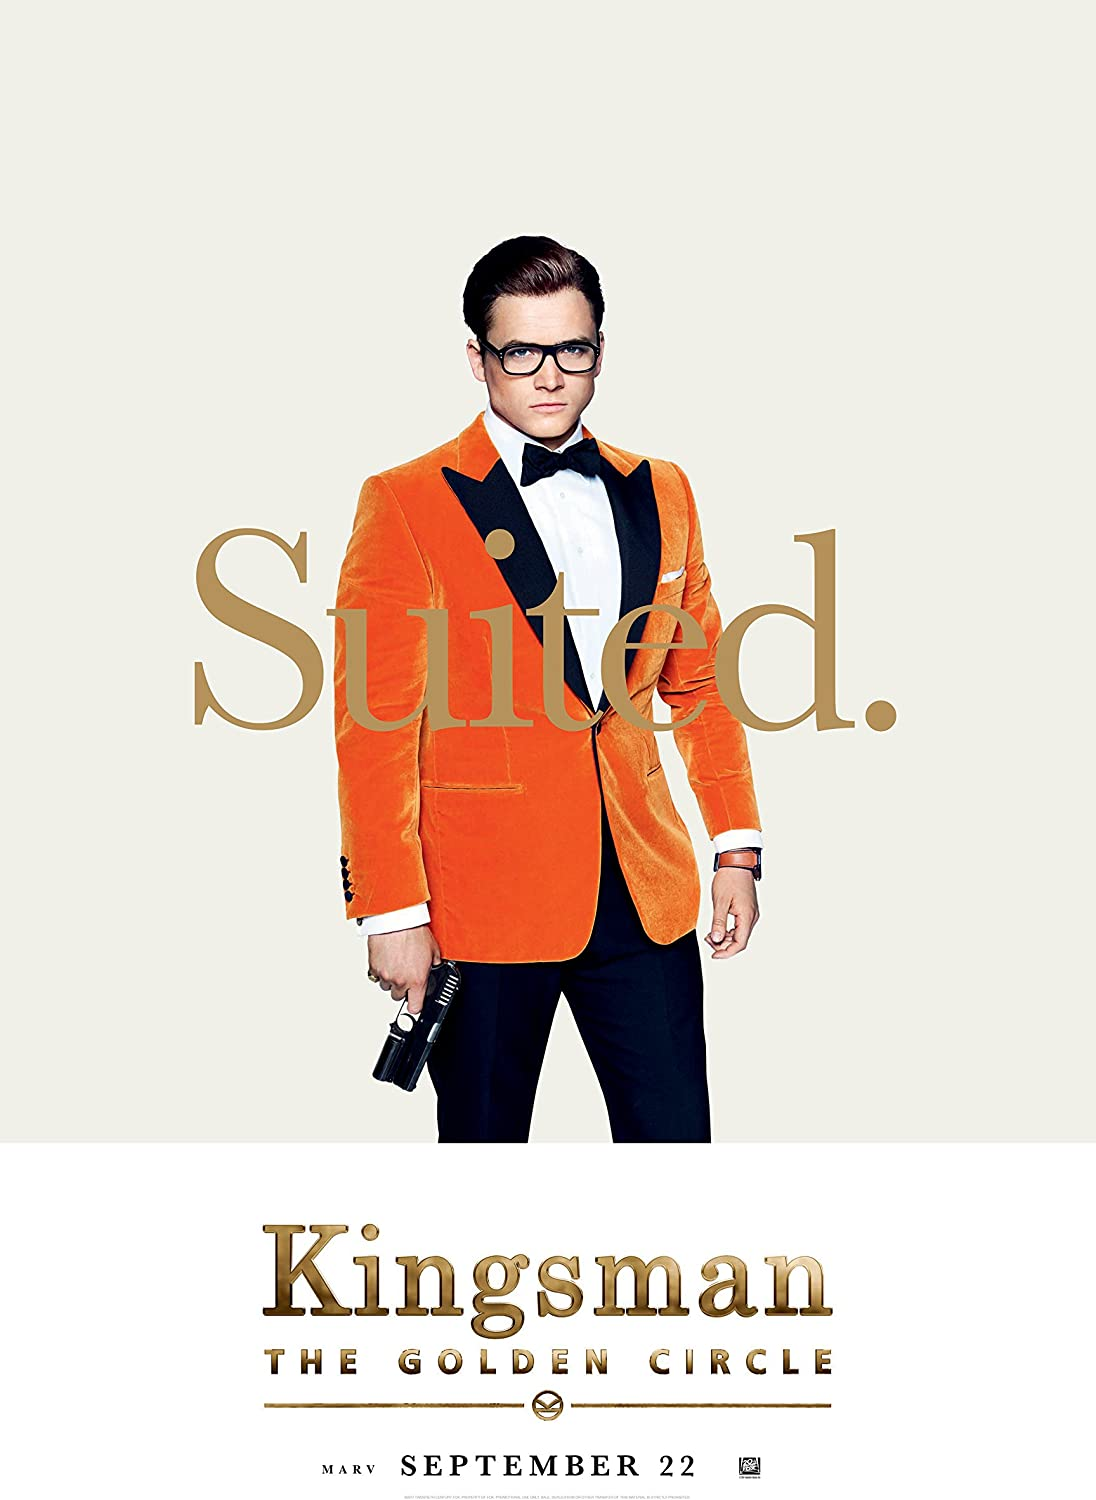 Vgpd Kingsman The Golden Circle 2017 Movie Poster Amazon Co Uk Kitchen Home